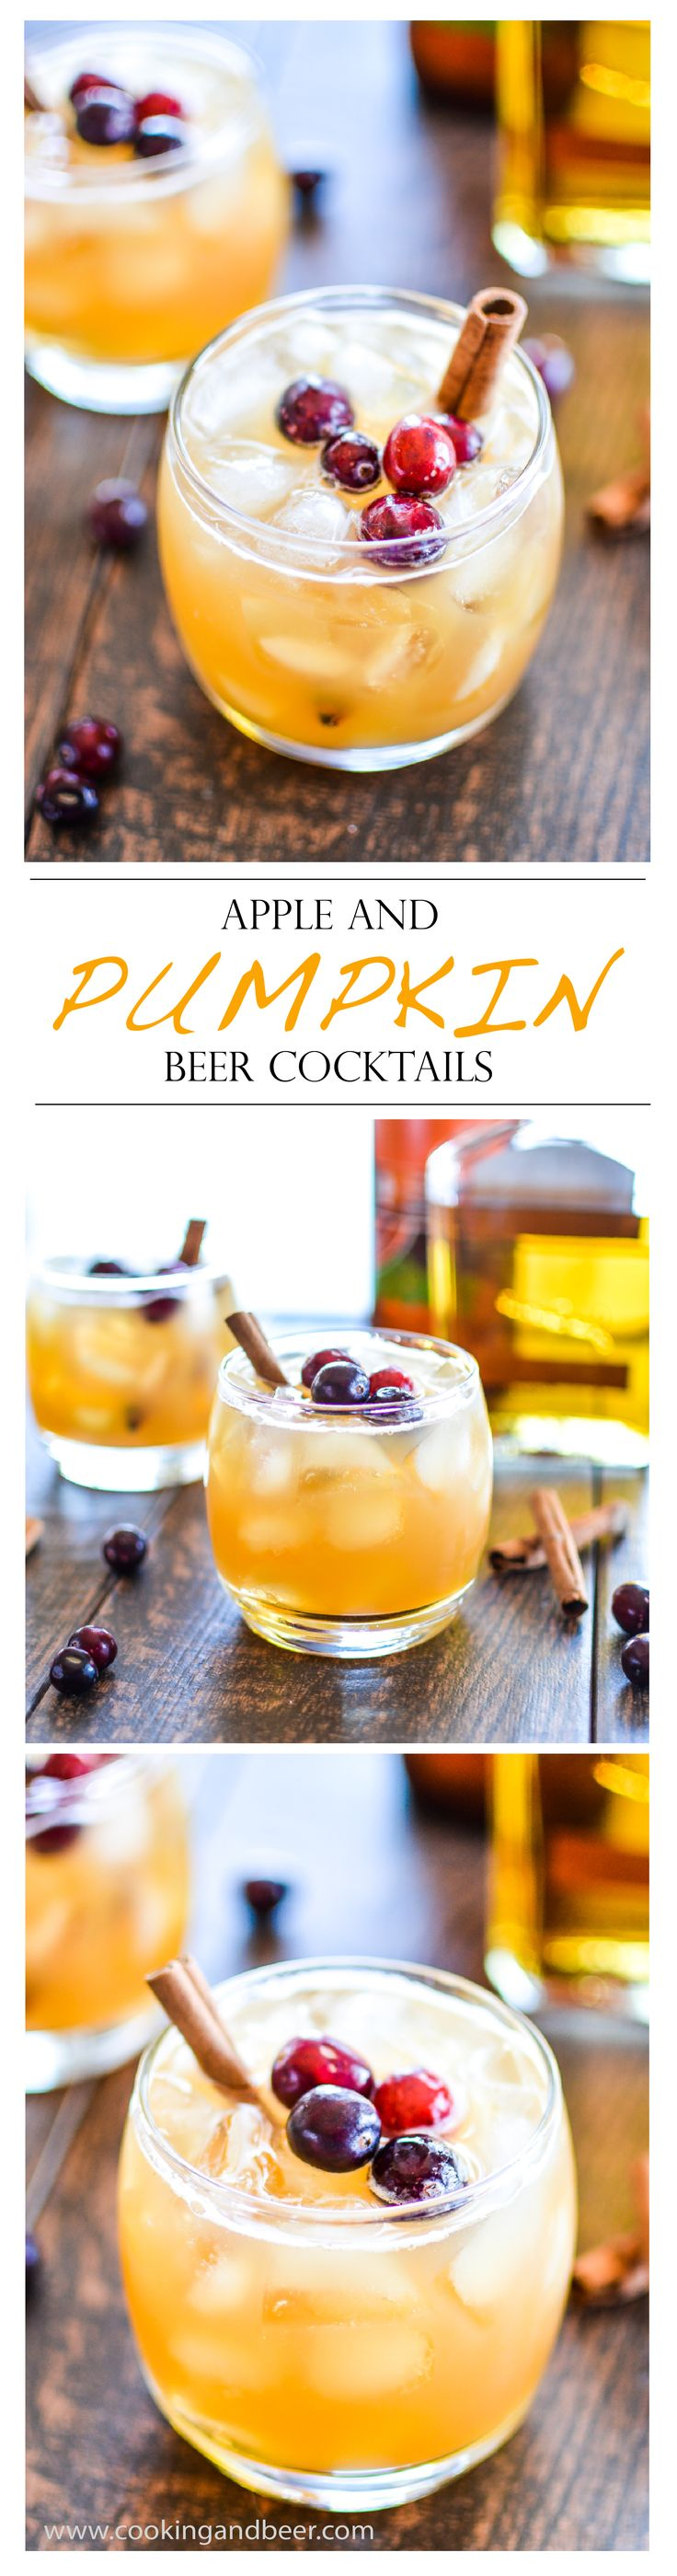 Apple and Pumpkin Beer Cocktails | www.cookingandbeer.com | @jalanesulia